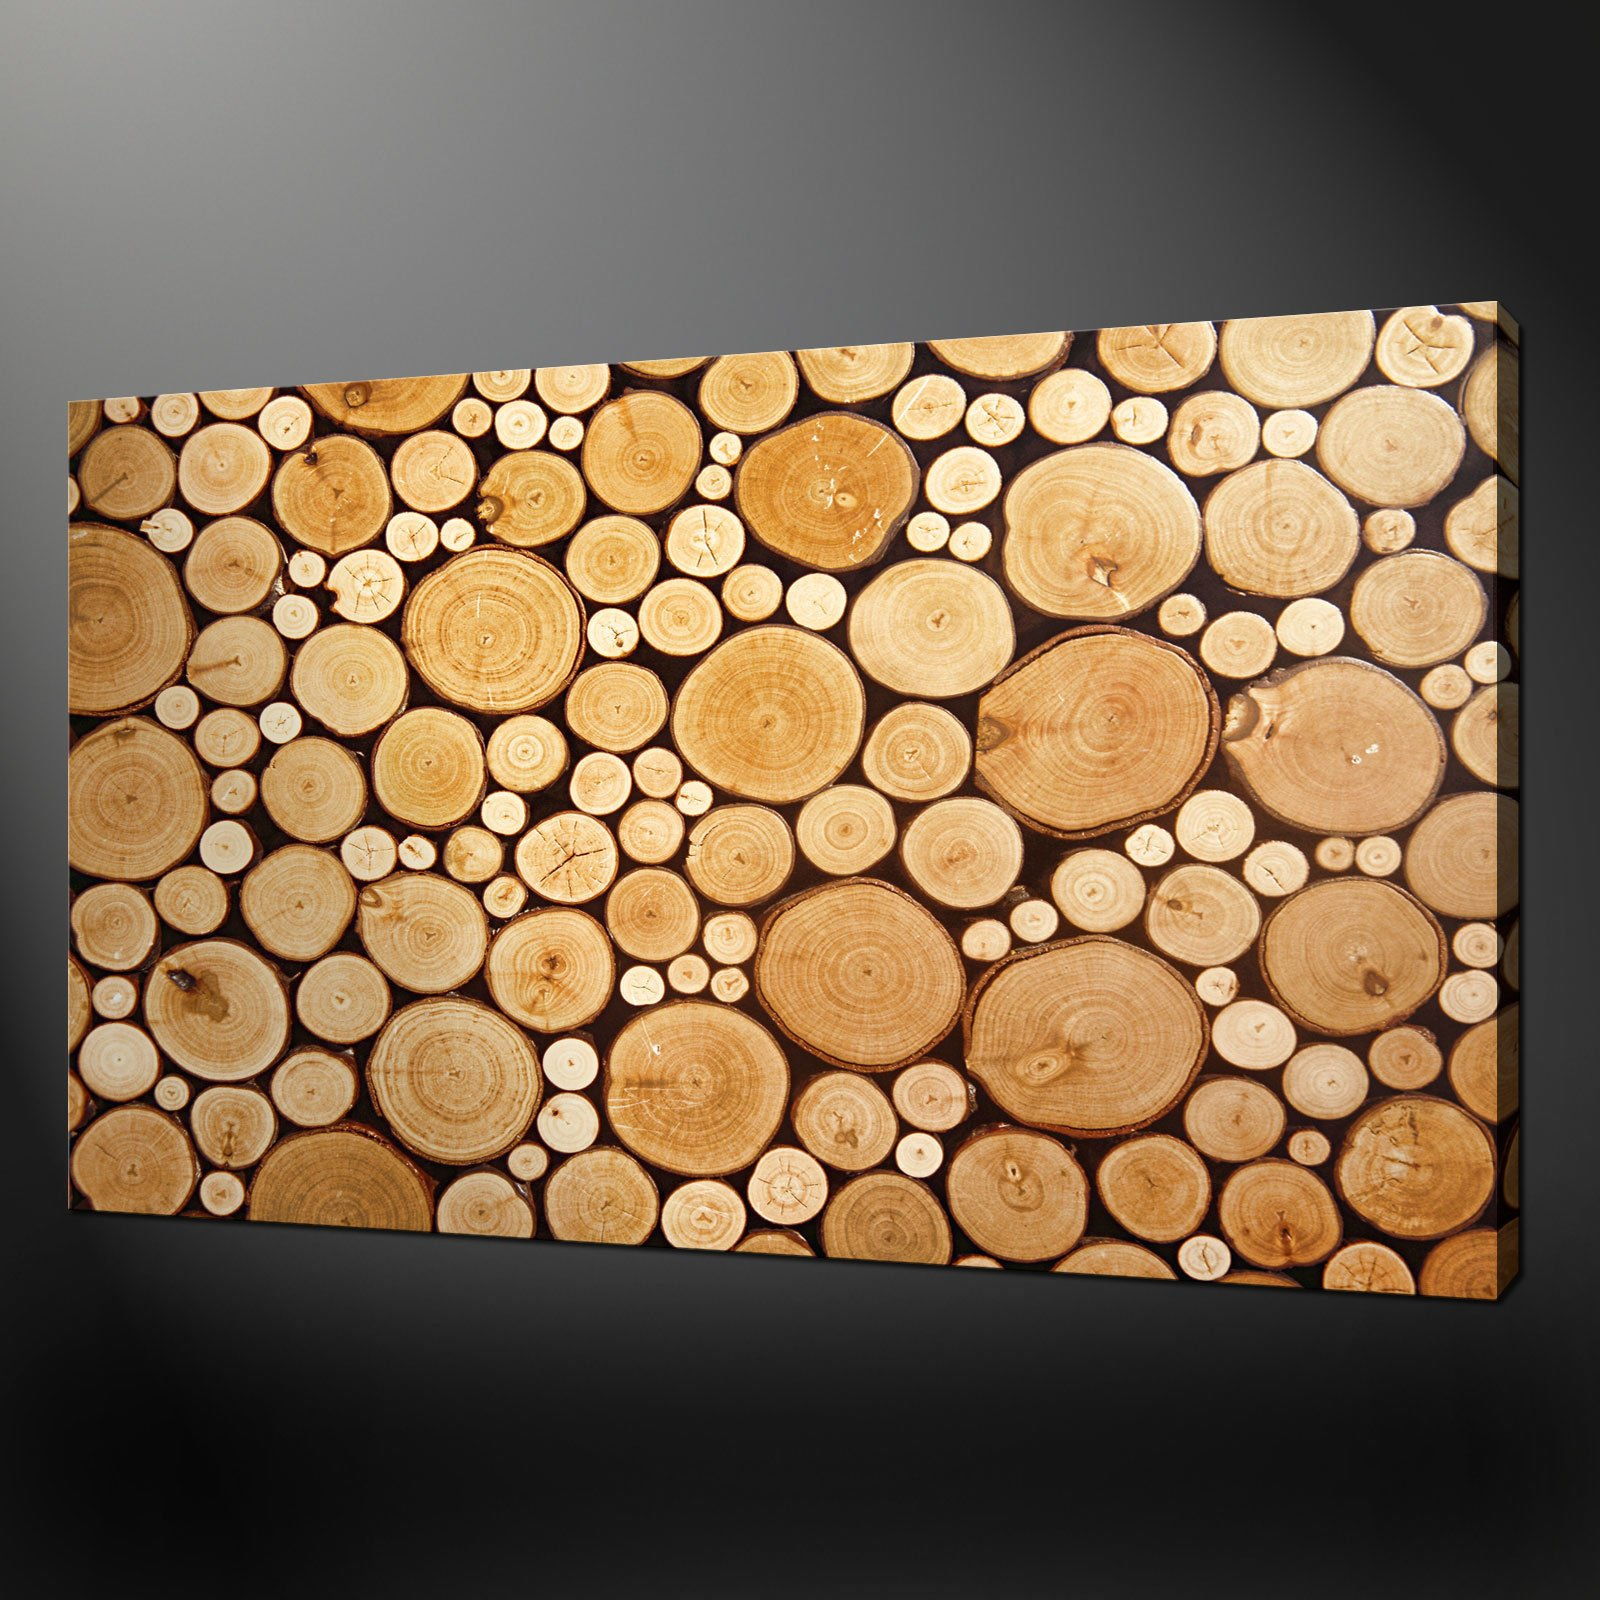 THE WOOD LOGS BOX CANVAS PRINT PICTURE MODERN WALL ART